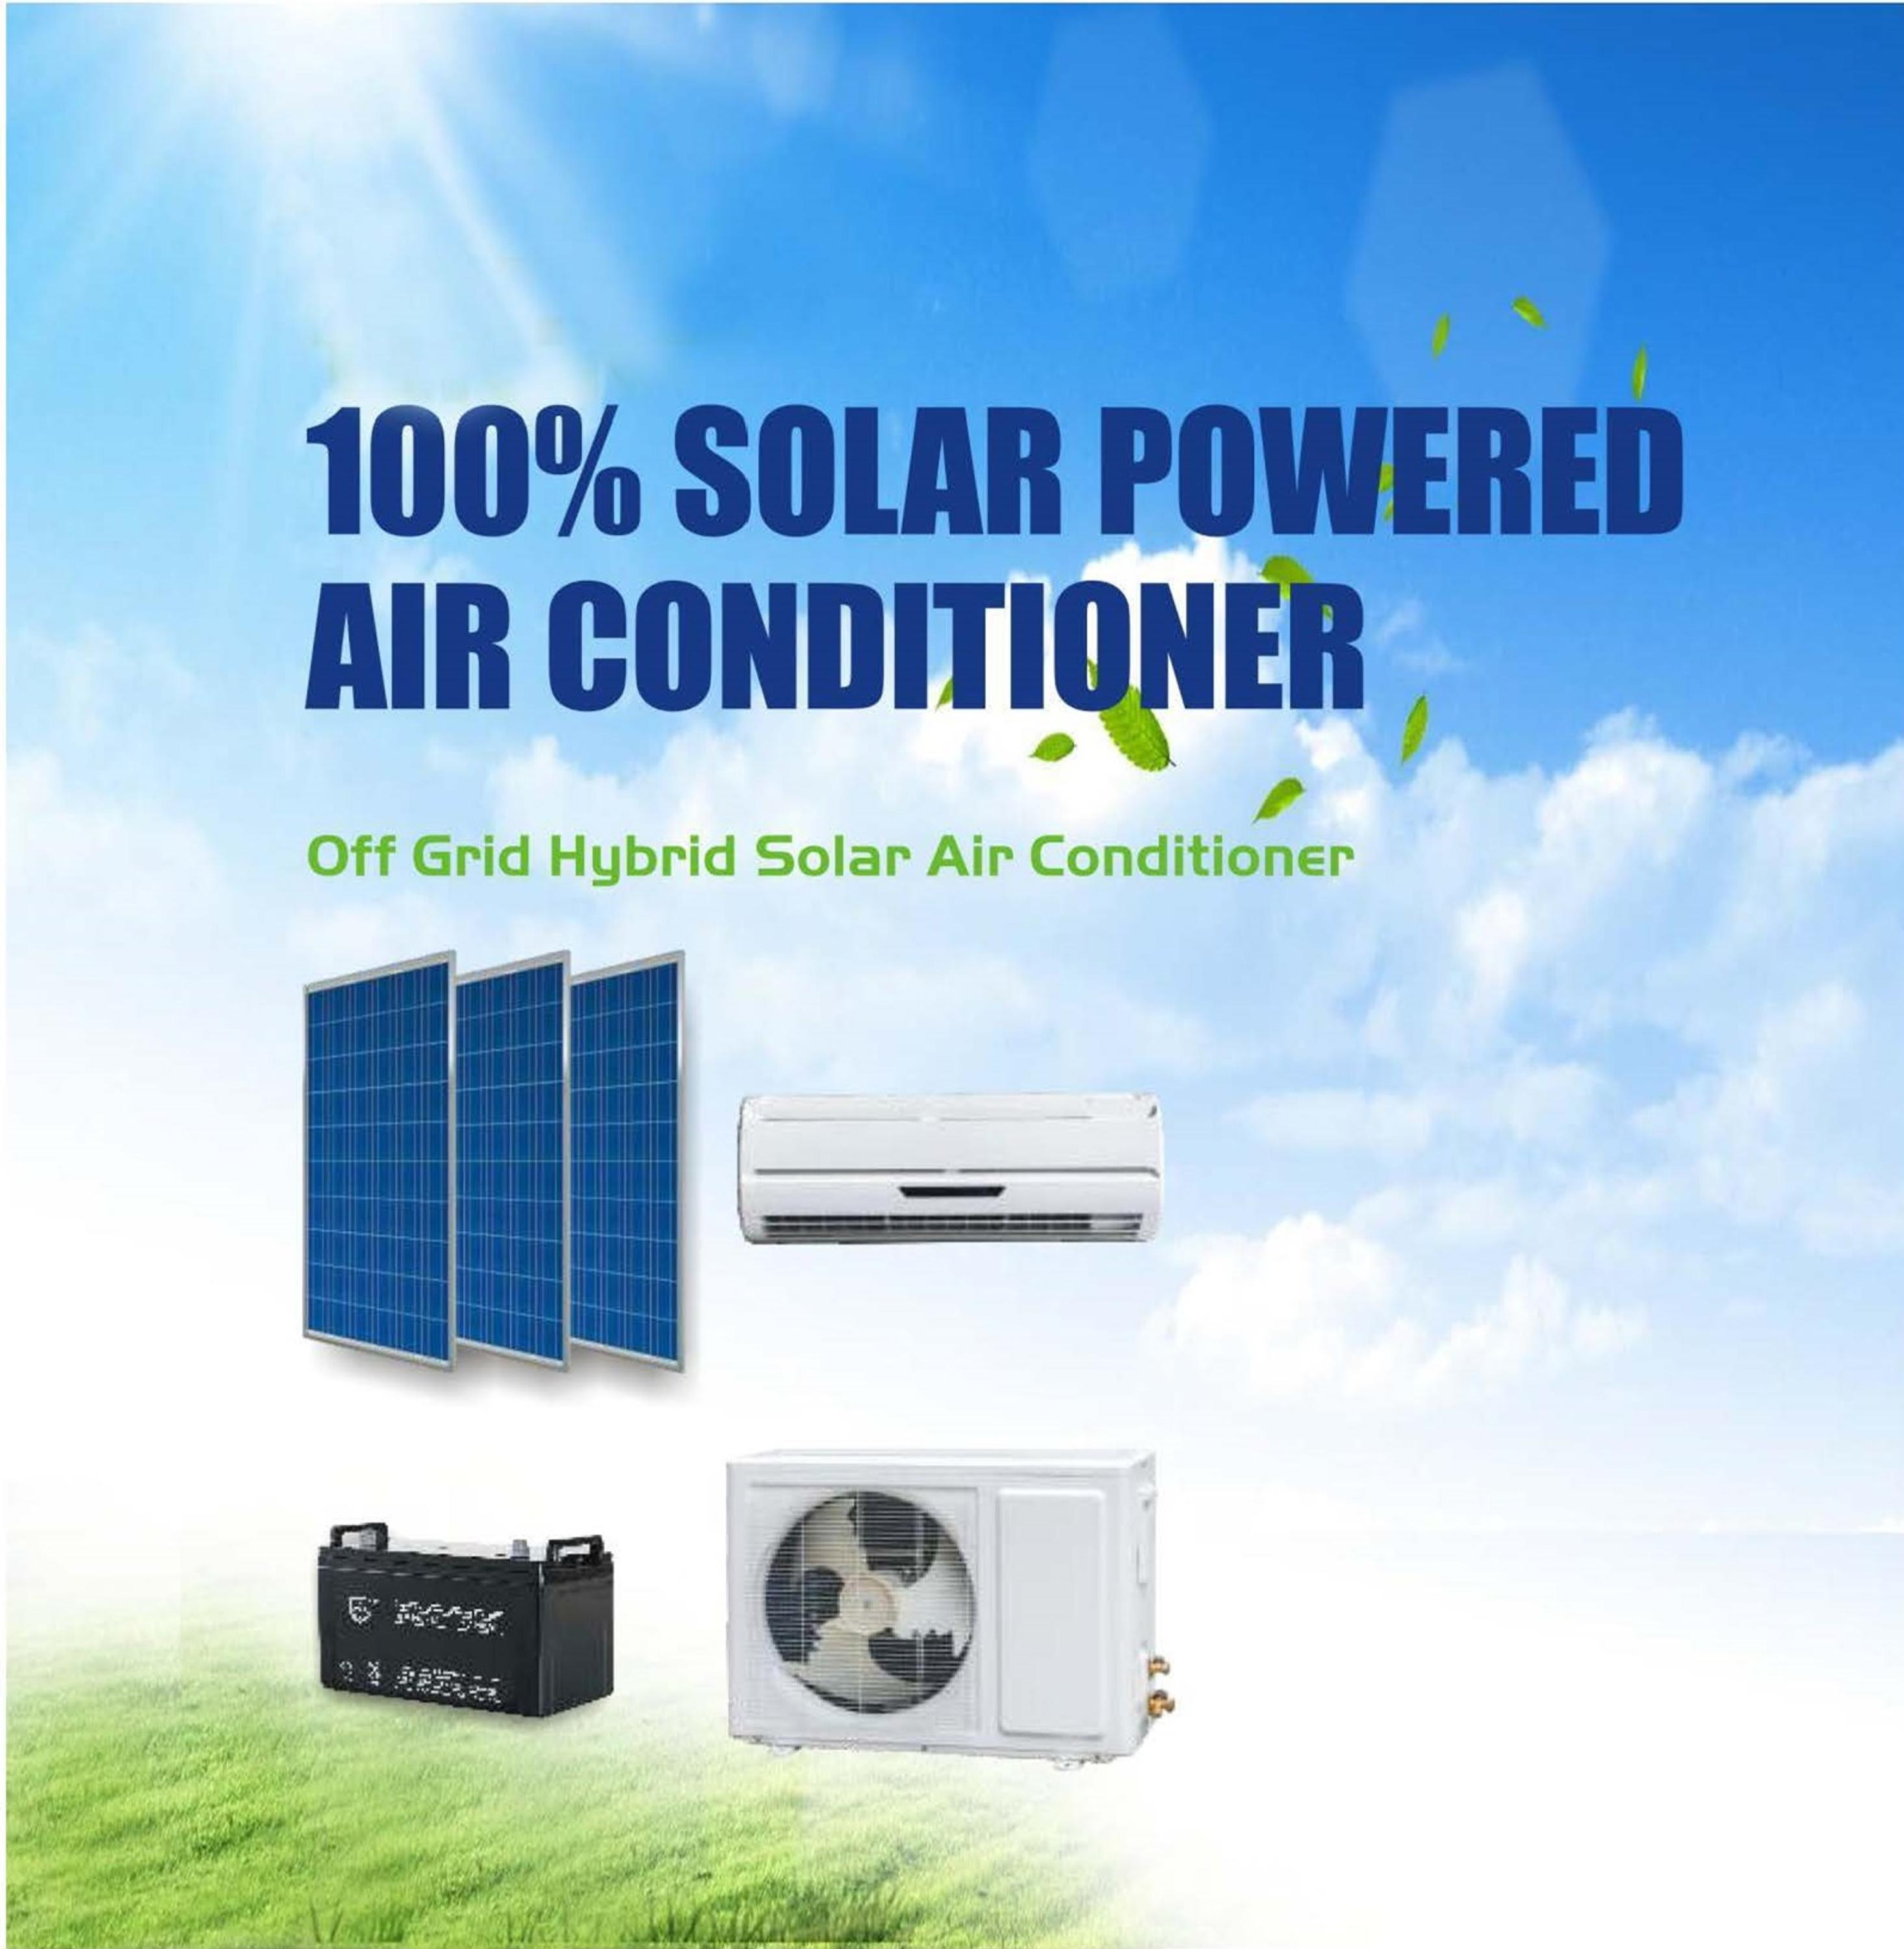 Brand New Haier Aircon Supplying 12000btu Powered Air Conditioner For Home  Using 48v Dc Compressor Solar With Ce Certificate - Buy Haier Solar Air